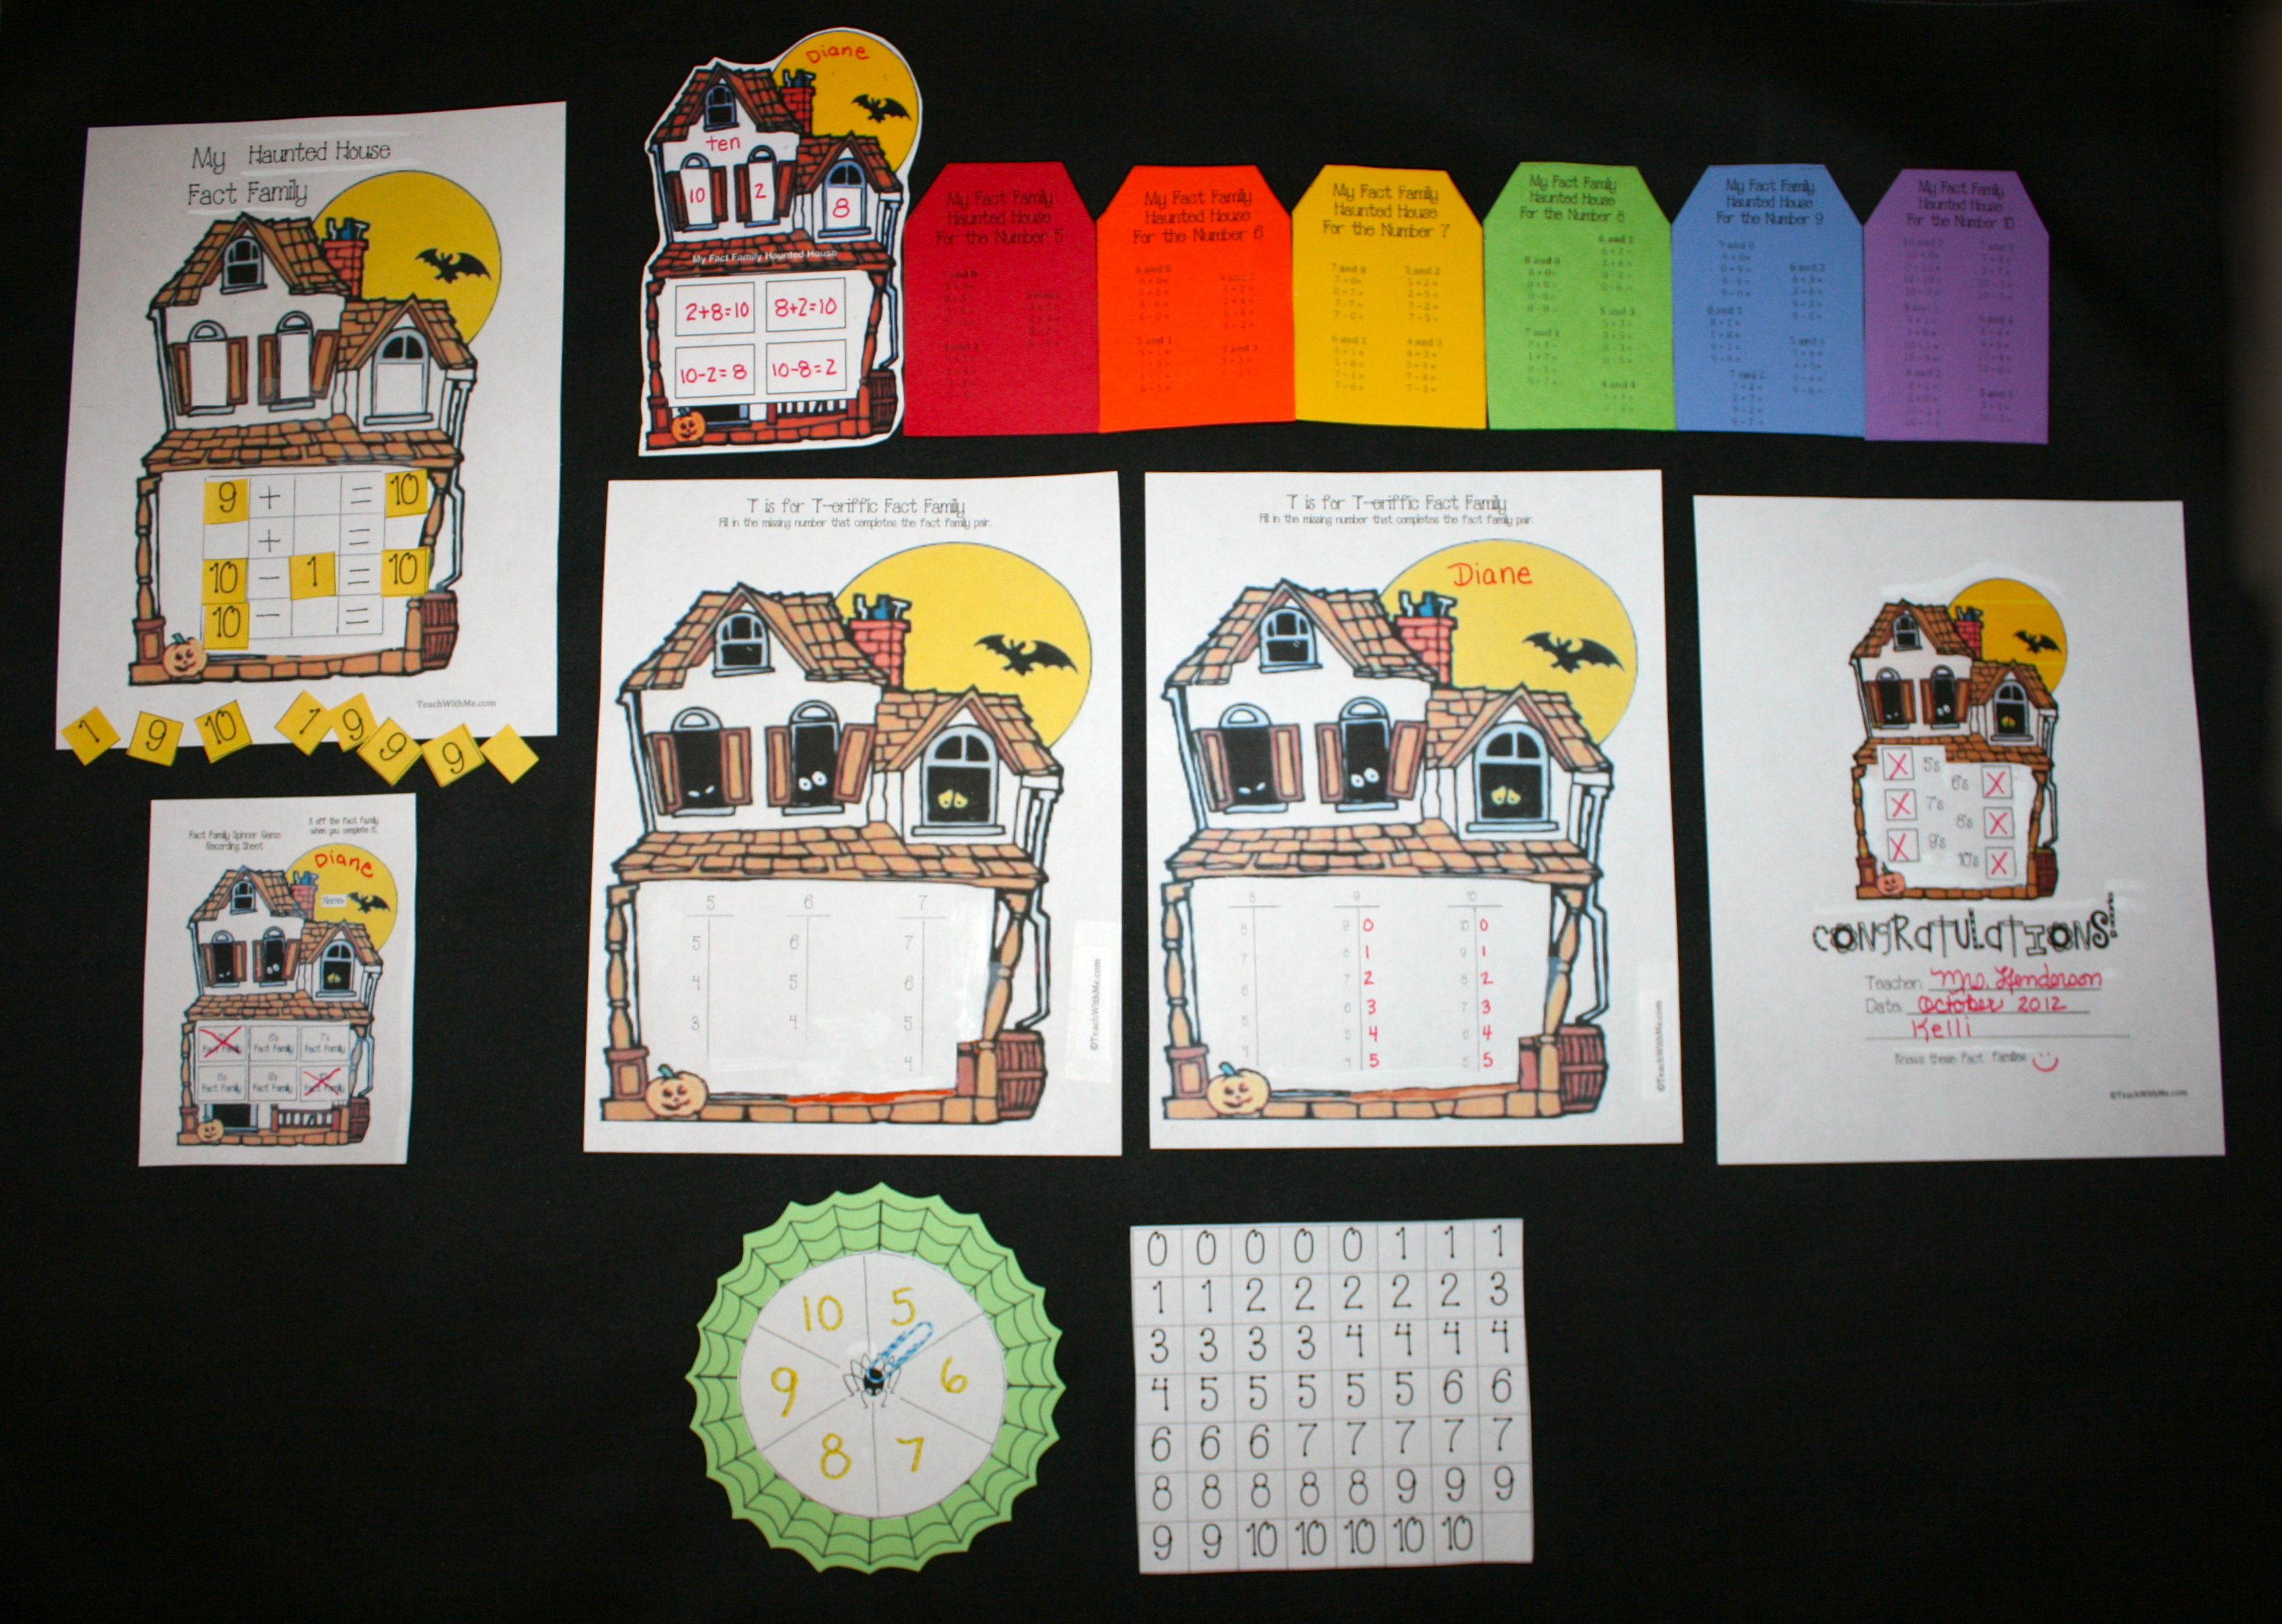 fact family activities, teaching fact families, fact family lessons, haunted house activities, haunted house lessons, haunted house themes, addition lessons, addition activities, subtraction lessons, subtraction themes, math centers, math centers for october, math centers for Halloween, math activities for halloween, halloween games, halloween math games, halloween fact families, october fact families, october math games, making dry erase boards, dry erase boards from from glosssy picture paper, fact family T-bar math worksheets, fact family certificates, math certificates,